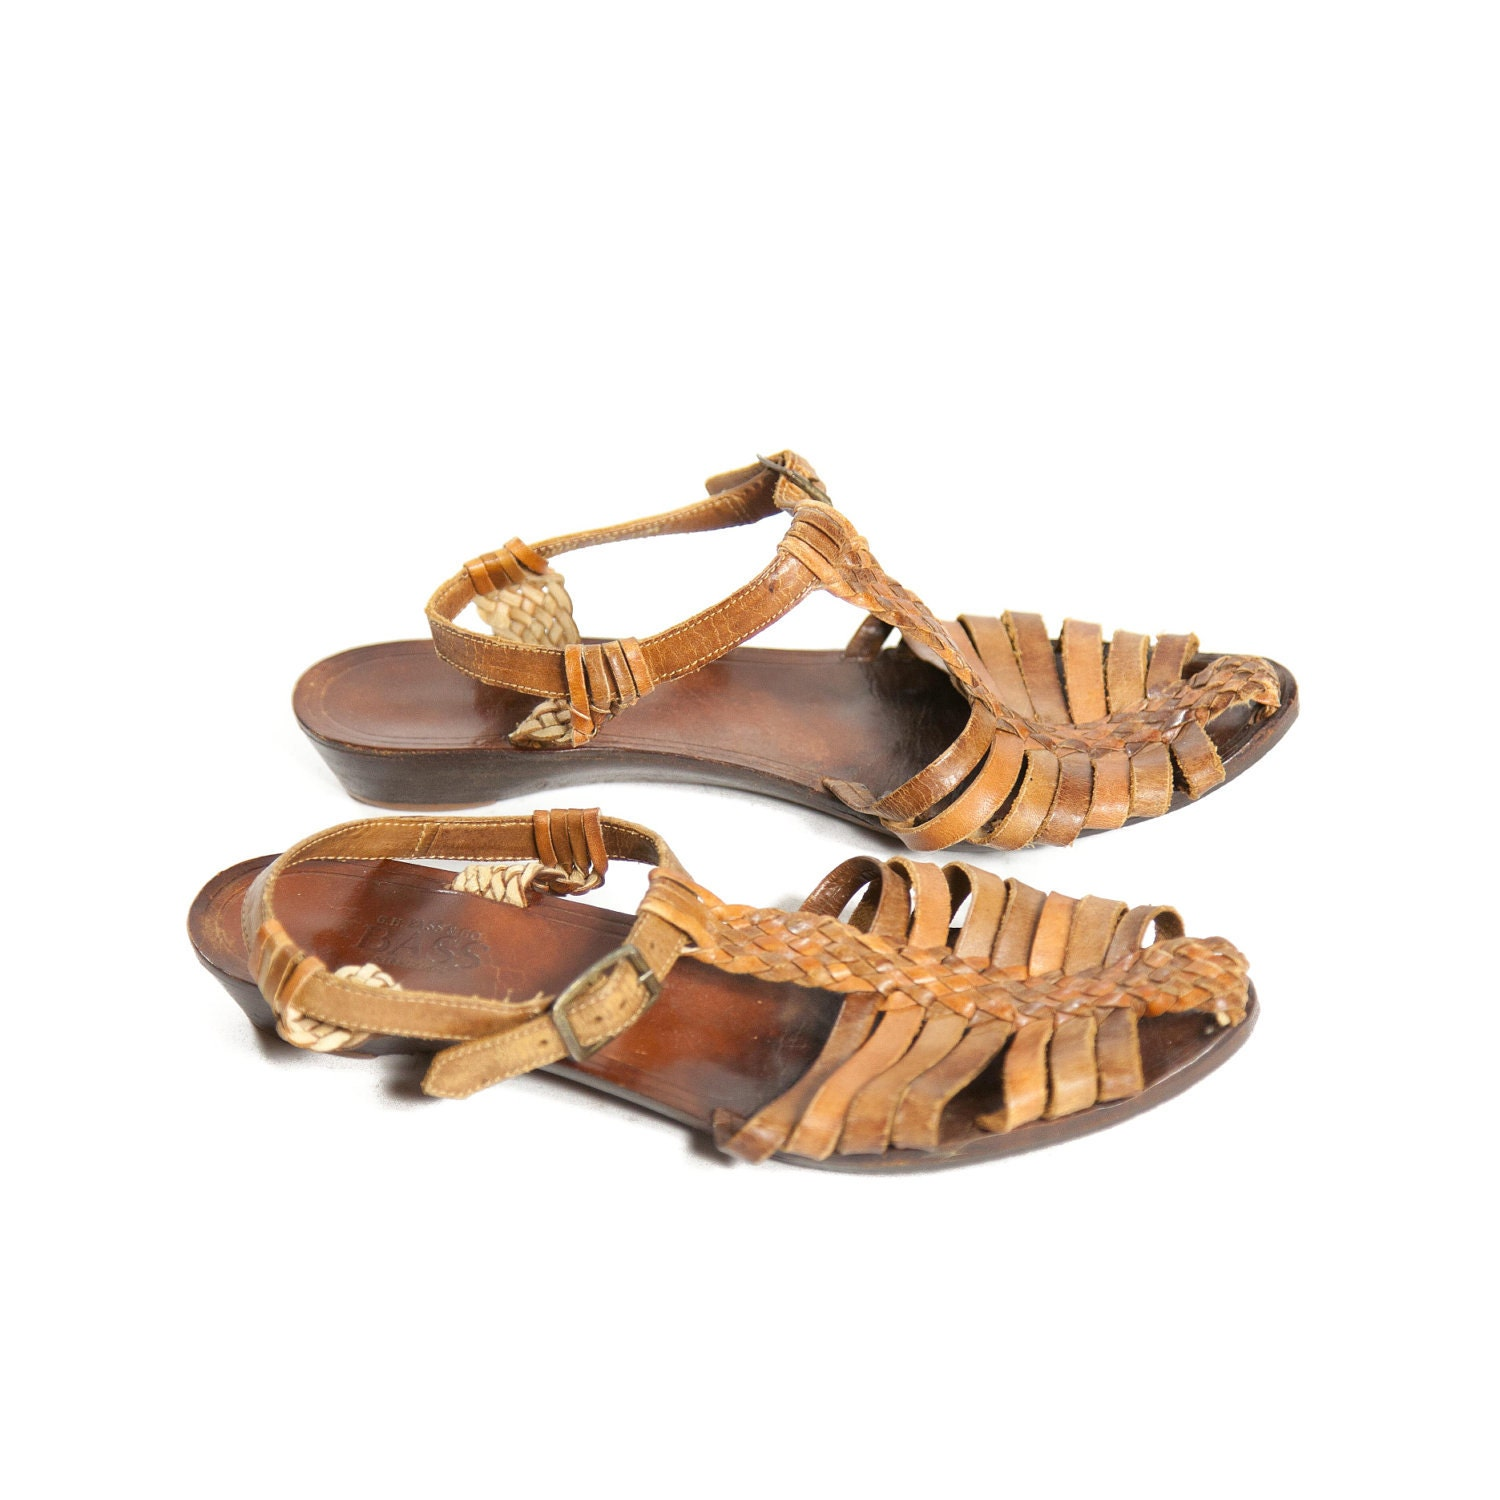 31 New Womens Shauna Huarache Sandals Playzoa Com